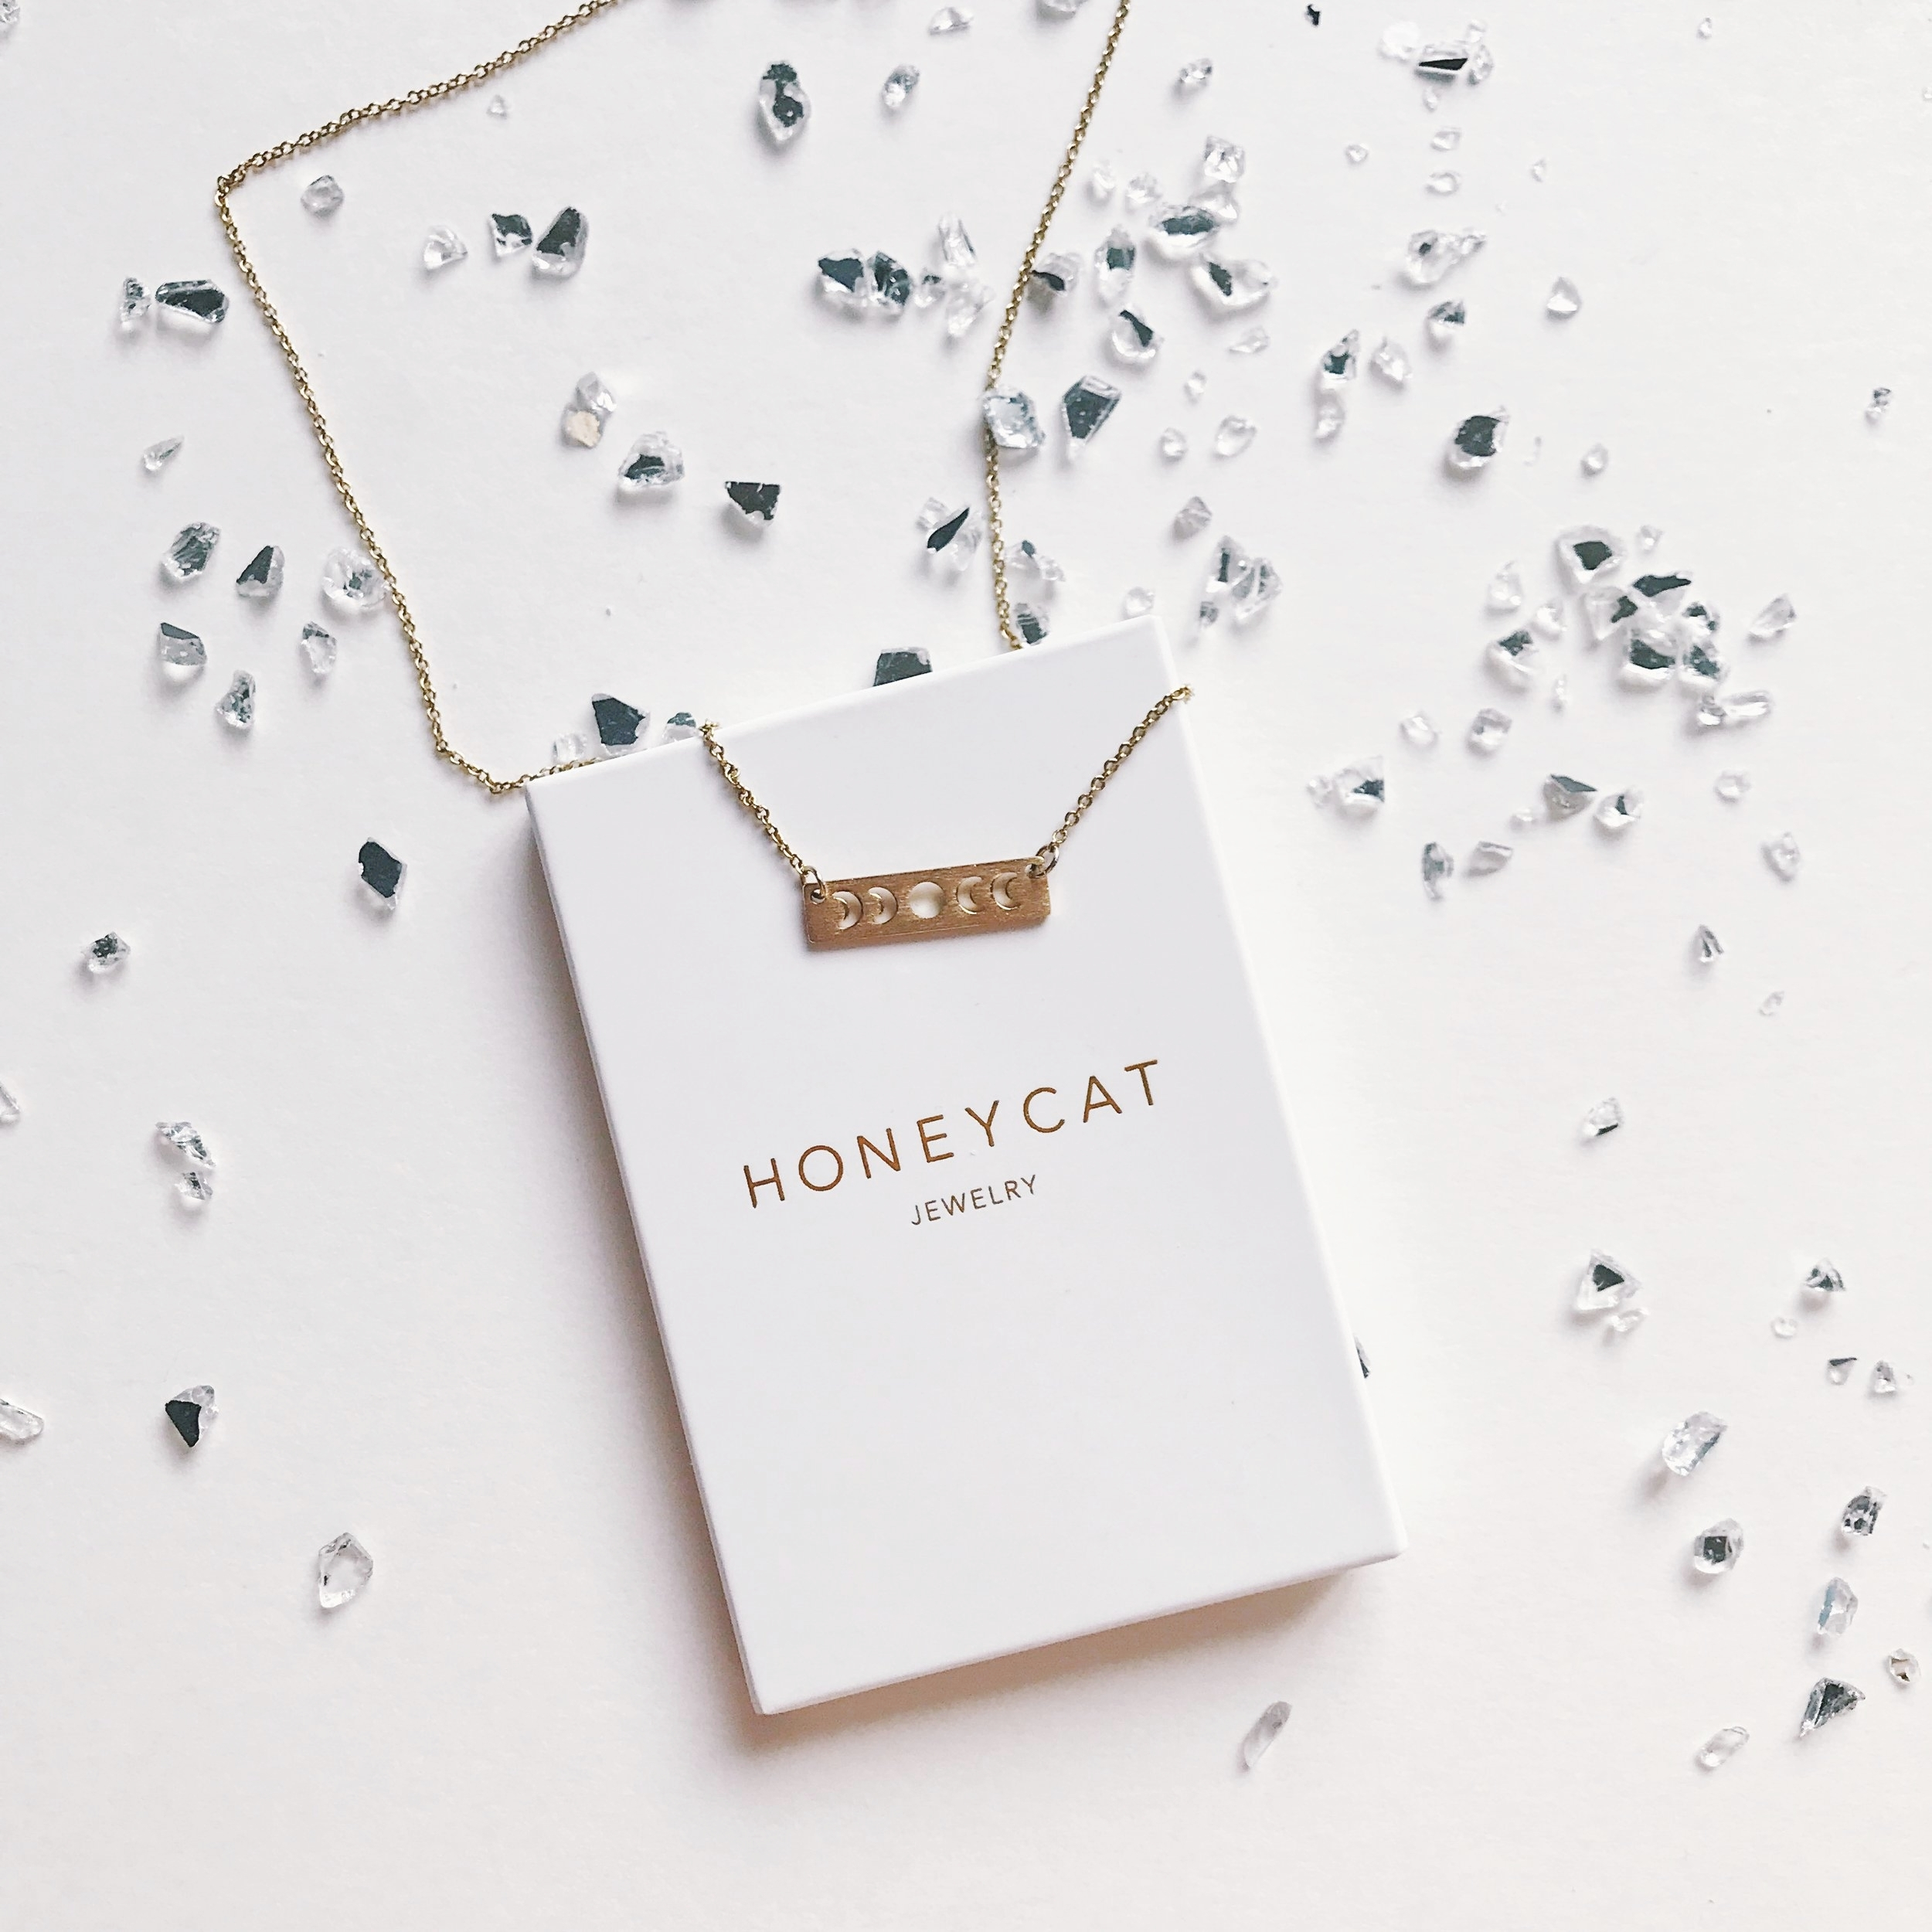 honeycat necklace moon phases